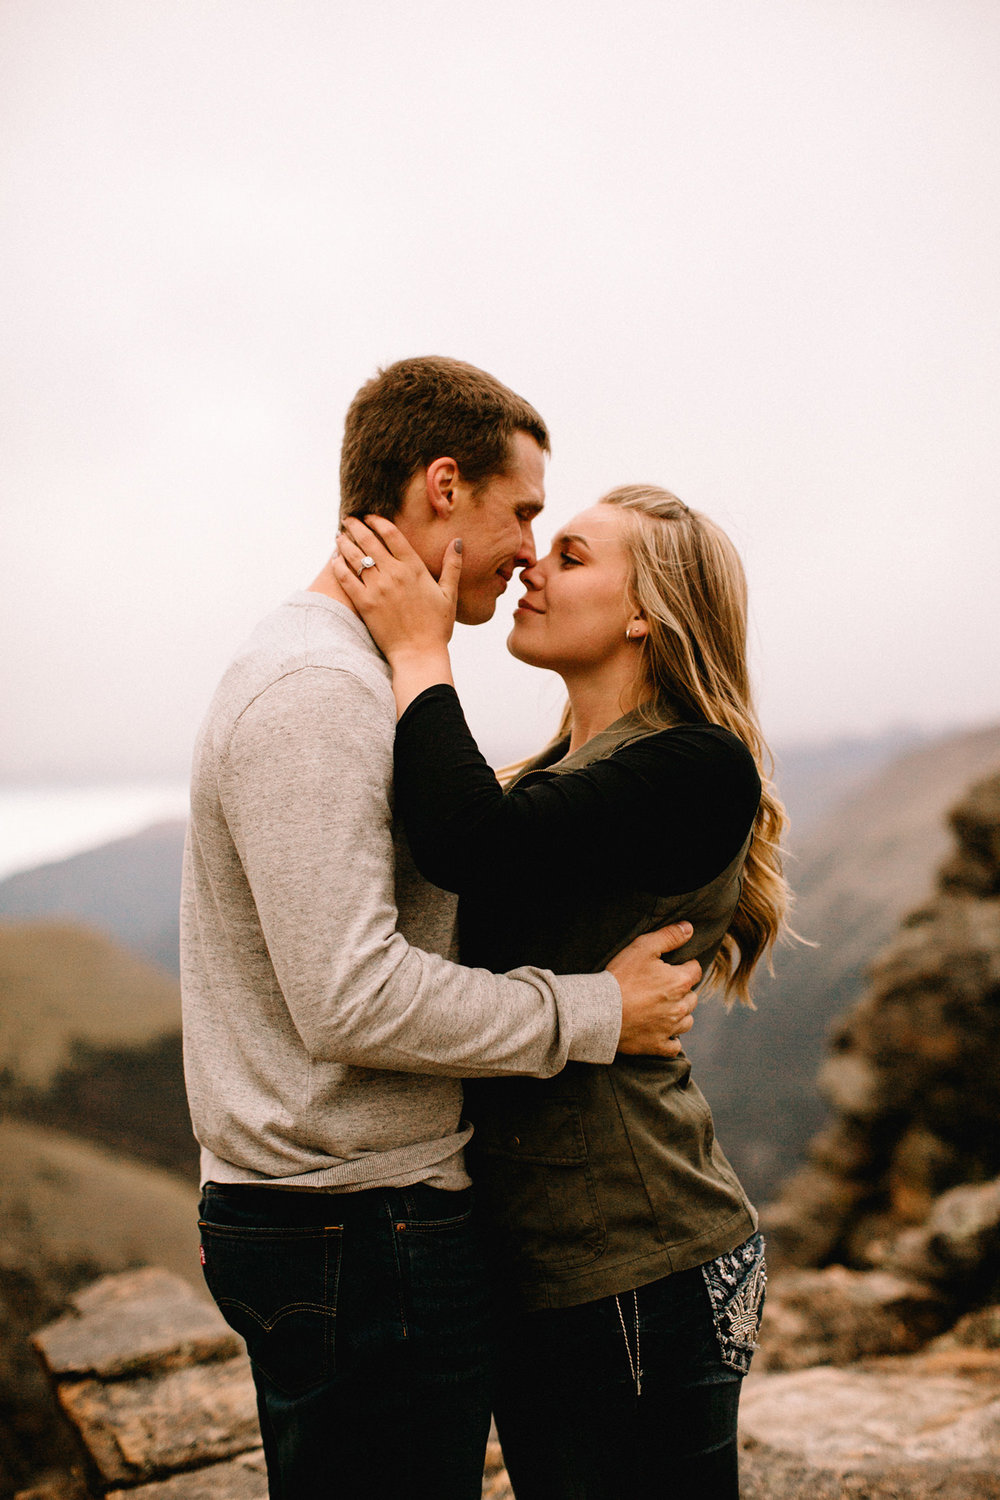 Rocky Mountain Engagement National Park Engaged Photos Wedding Elopement Portrait Mountains Trail Ridge Rd Peak Alpine Dress Lulus Rules Permit Photo Adventure Love Couples Destination Liz Osban photography Cheyenne Wyoming34.jpg